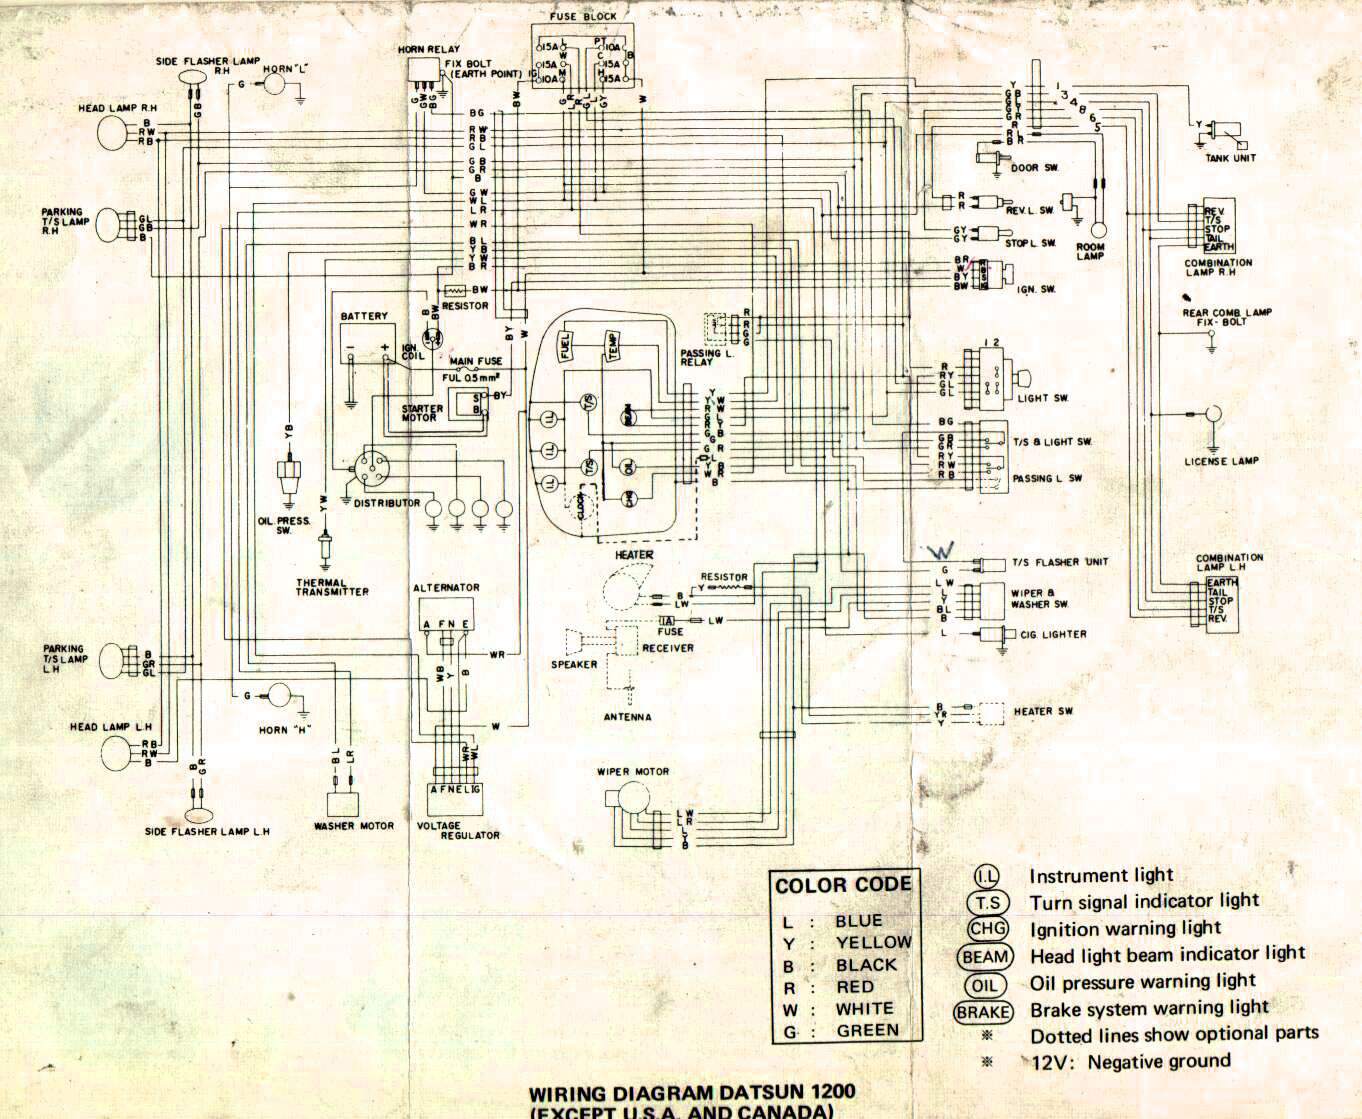 Stupendous Tech Wiki Wiring Diagram Datsun 1200 Club Wiring Cloud Mousmenurrecoveryedborg